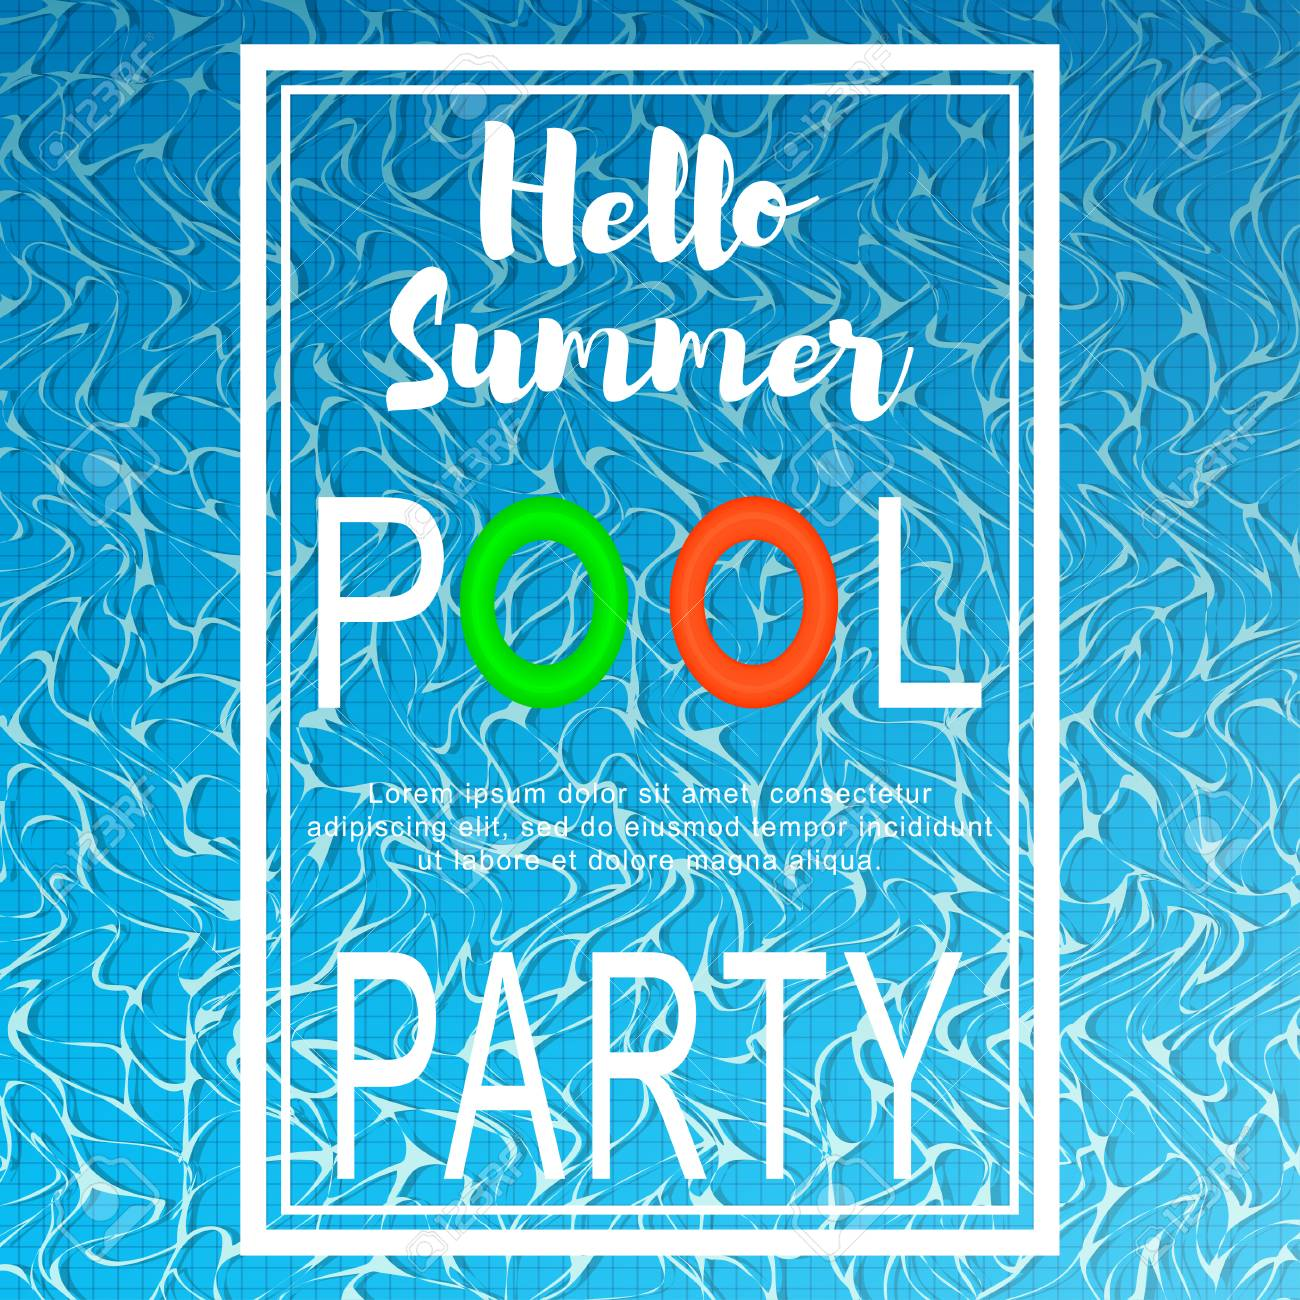 pool party poster template with hello summer text lettering